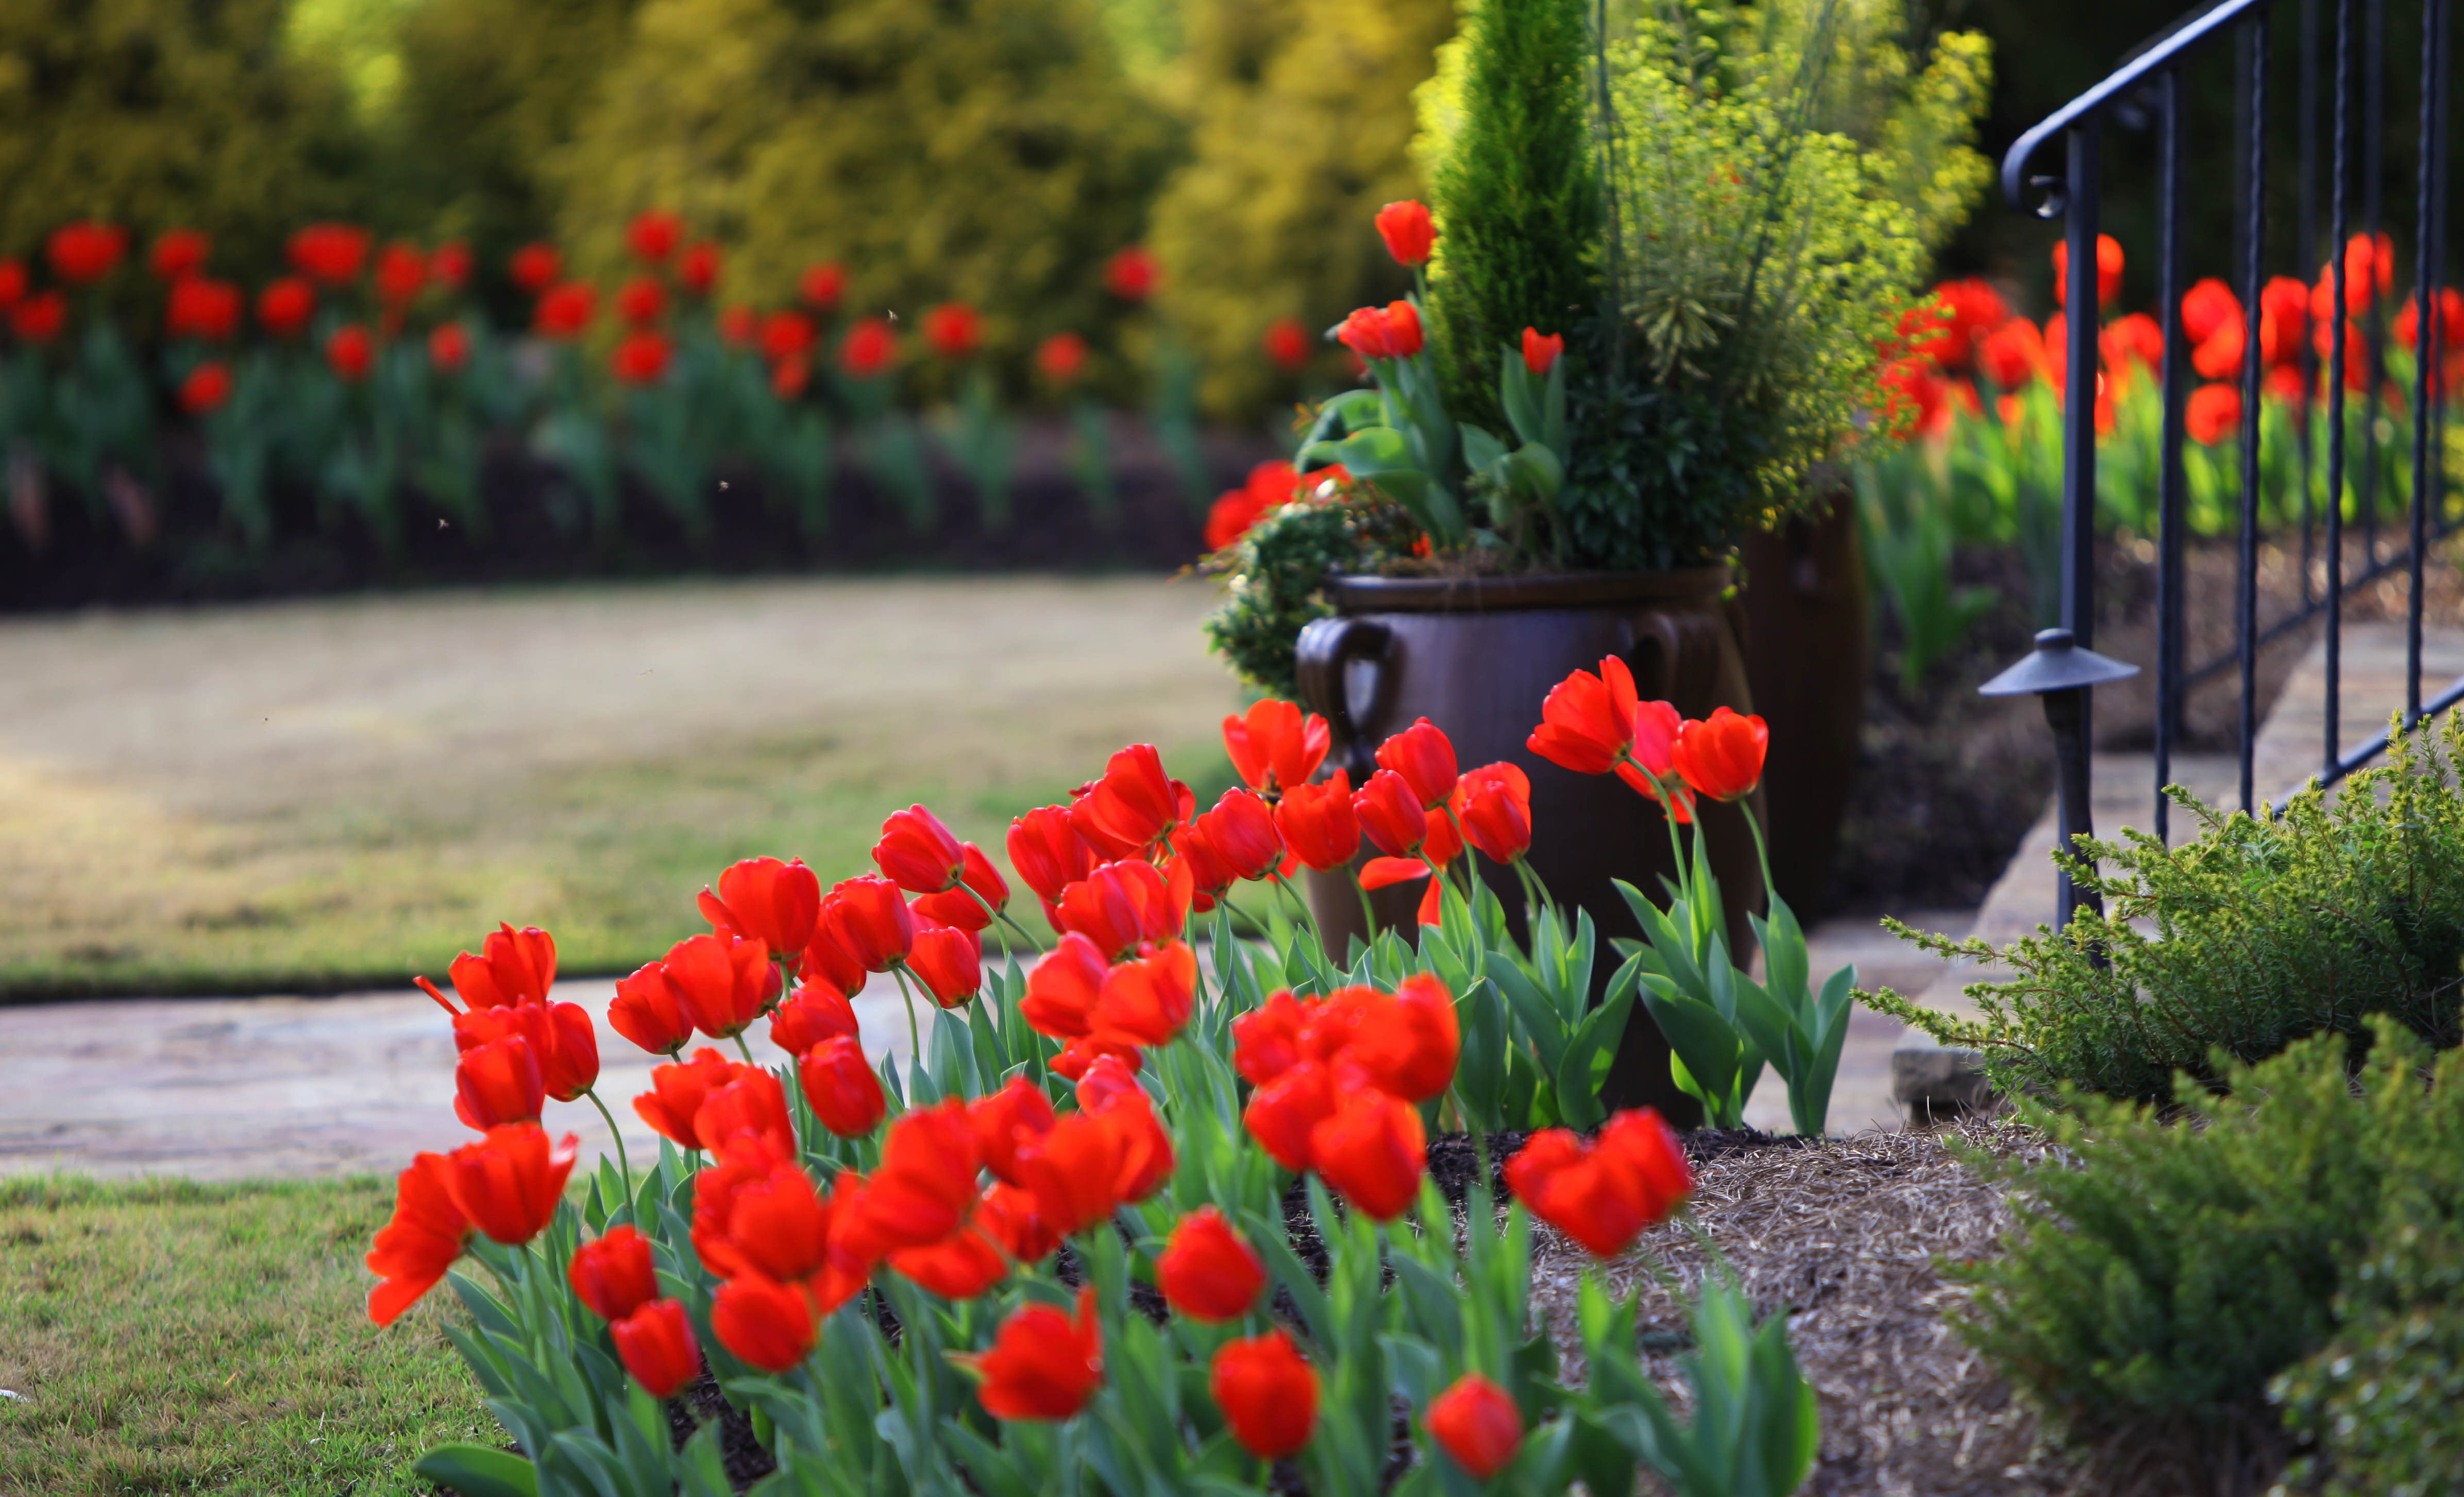 Front yard island beds with red tulips.